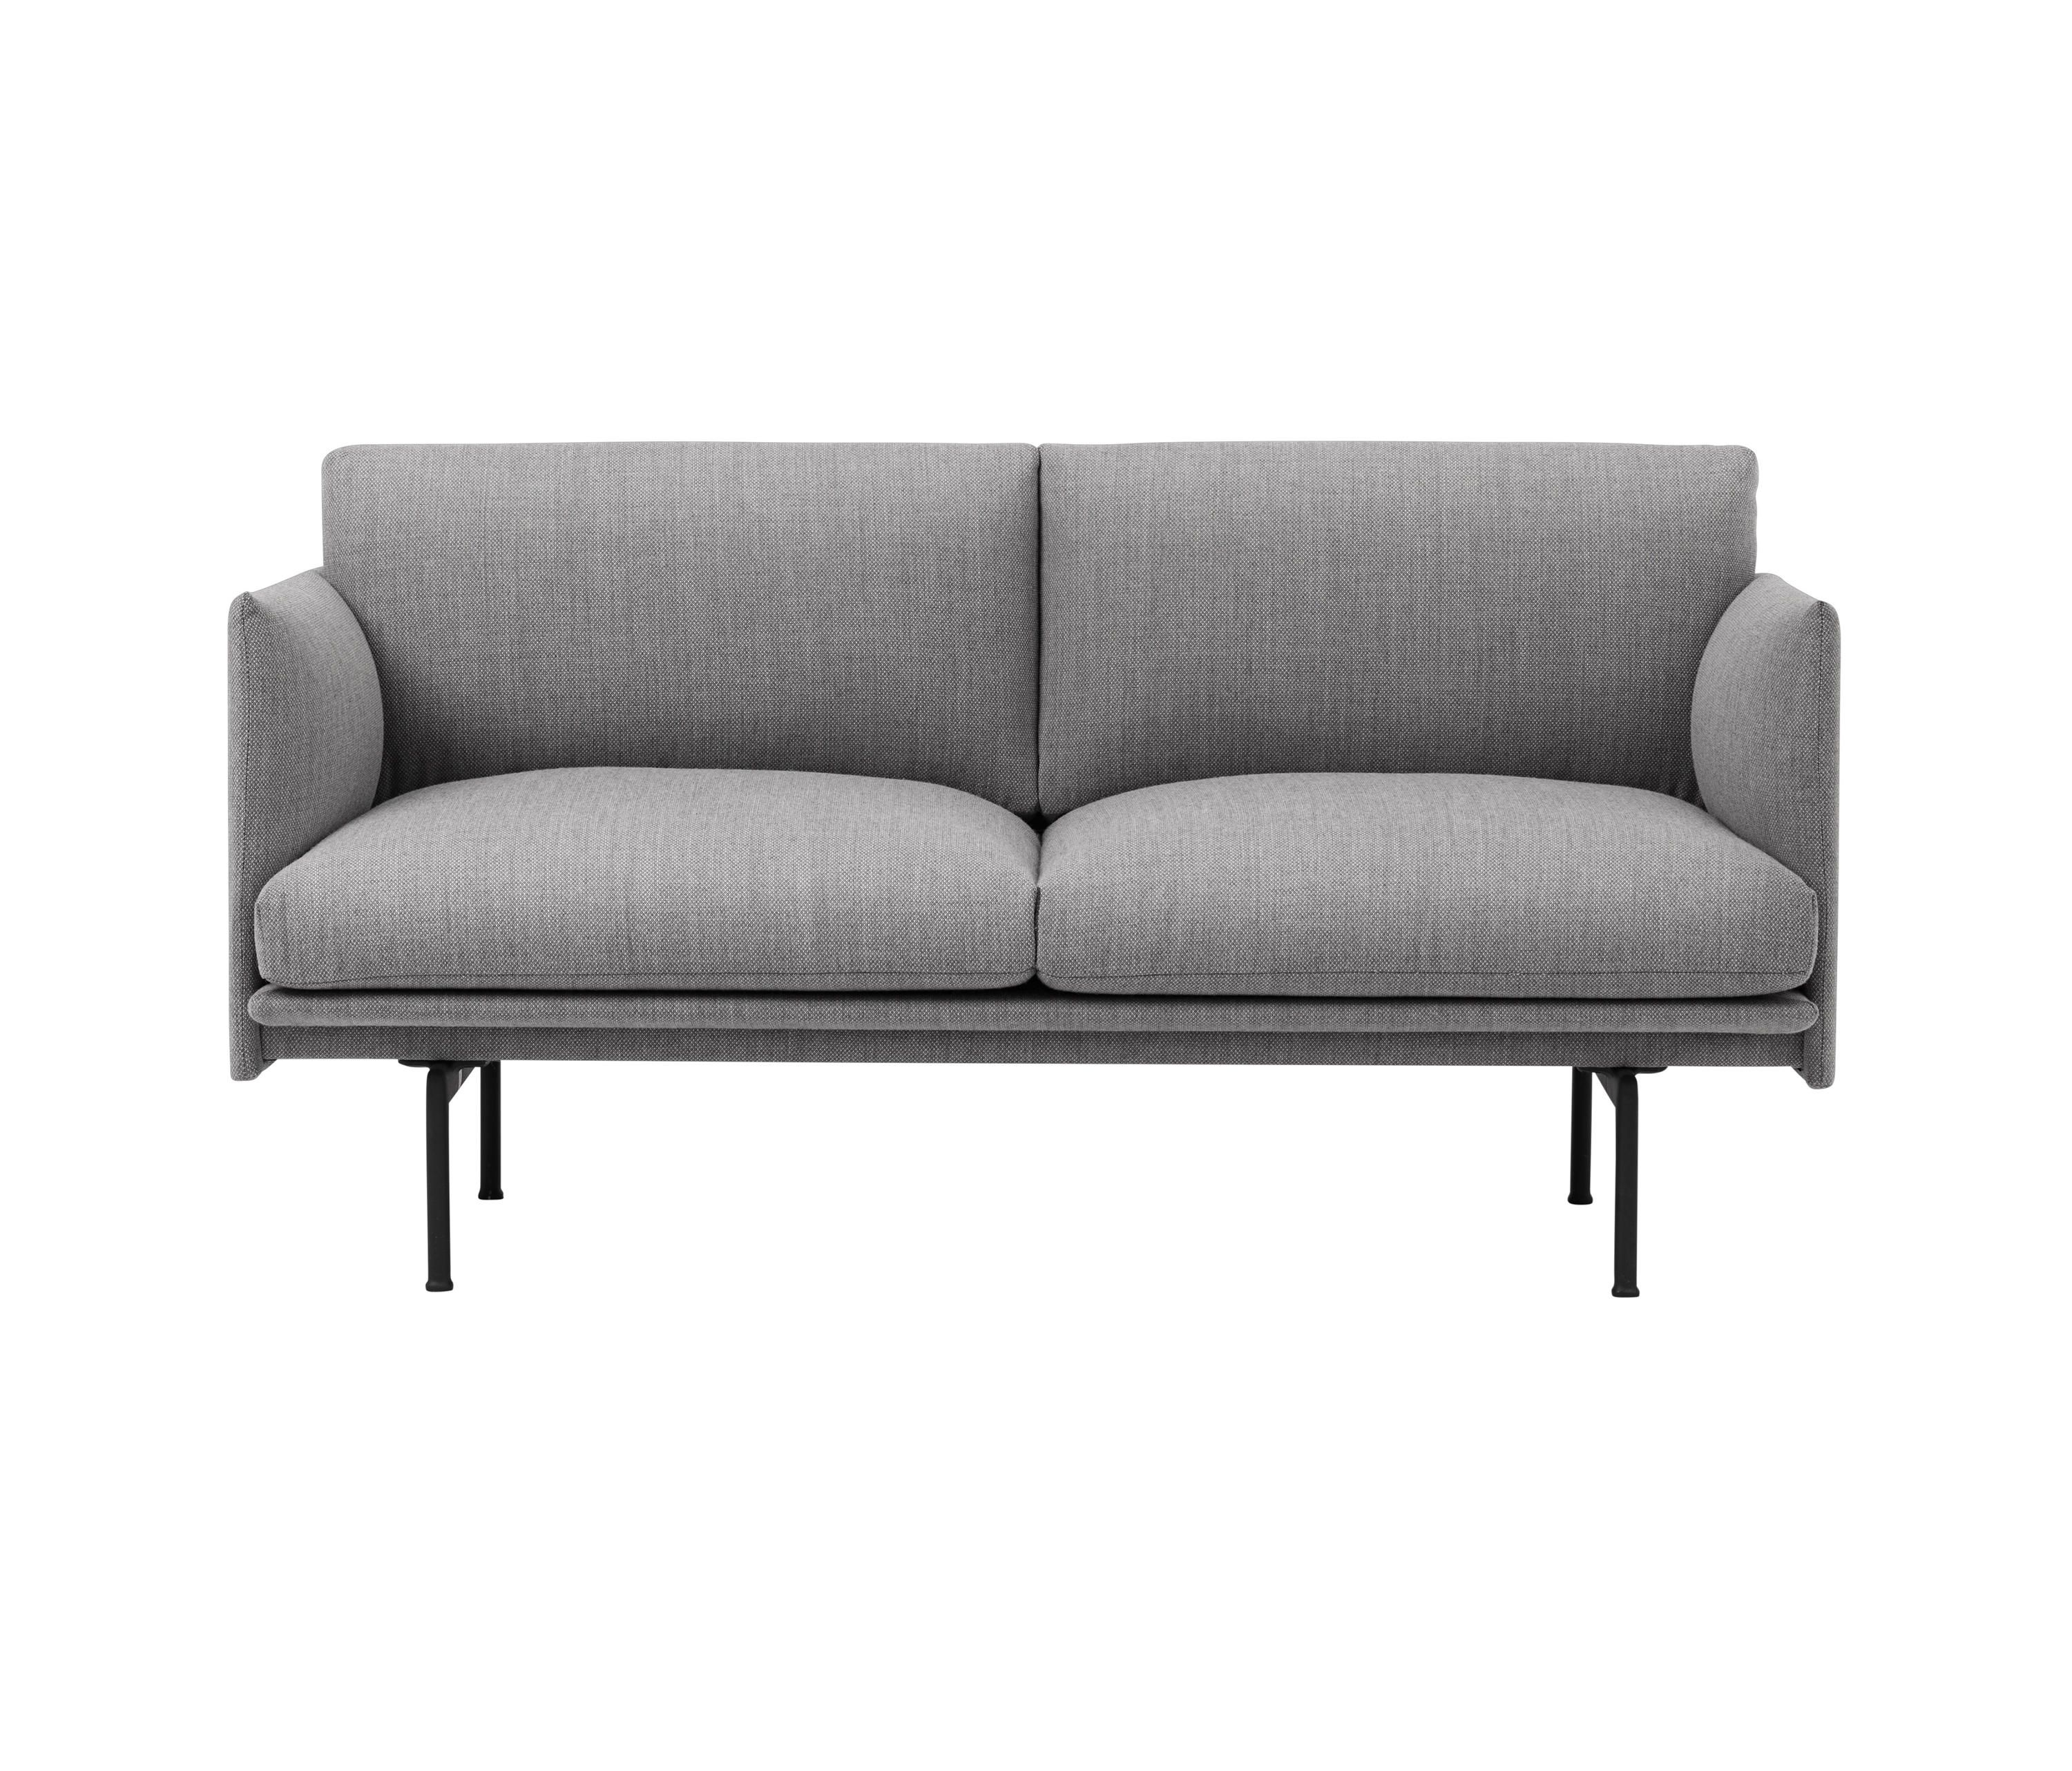 Schlafsofa Wittmann Pin By Phayliu On 23 Pinterest Sofa Lounge Sofa And Furniture